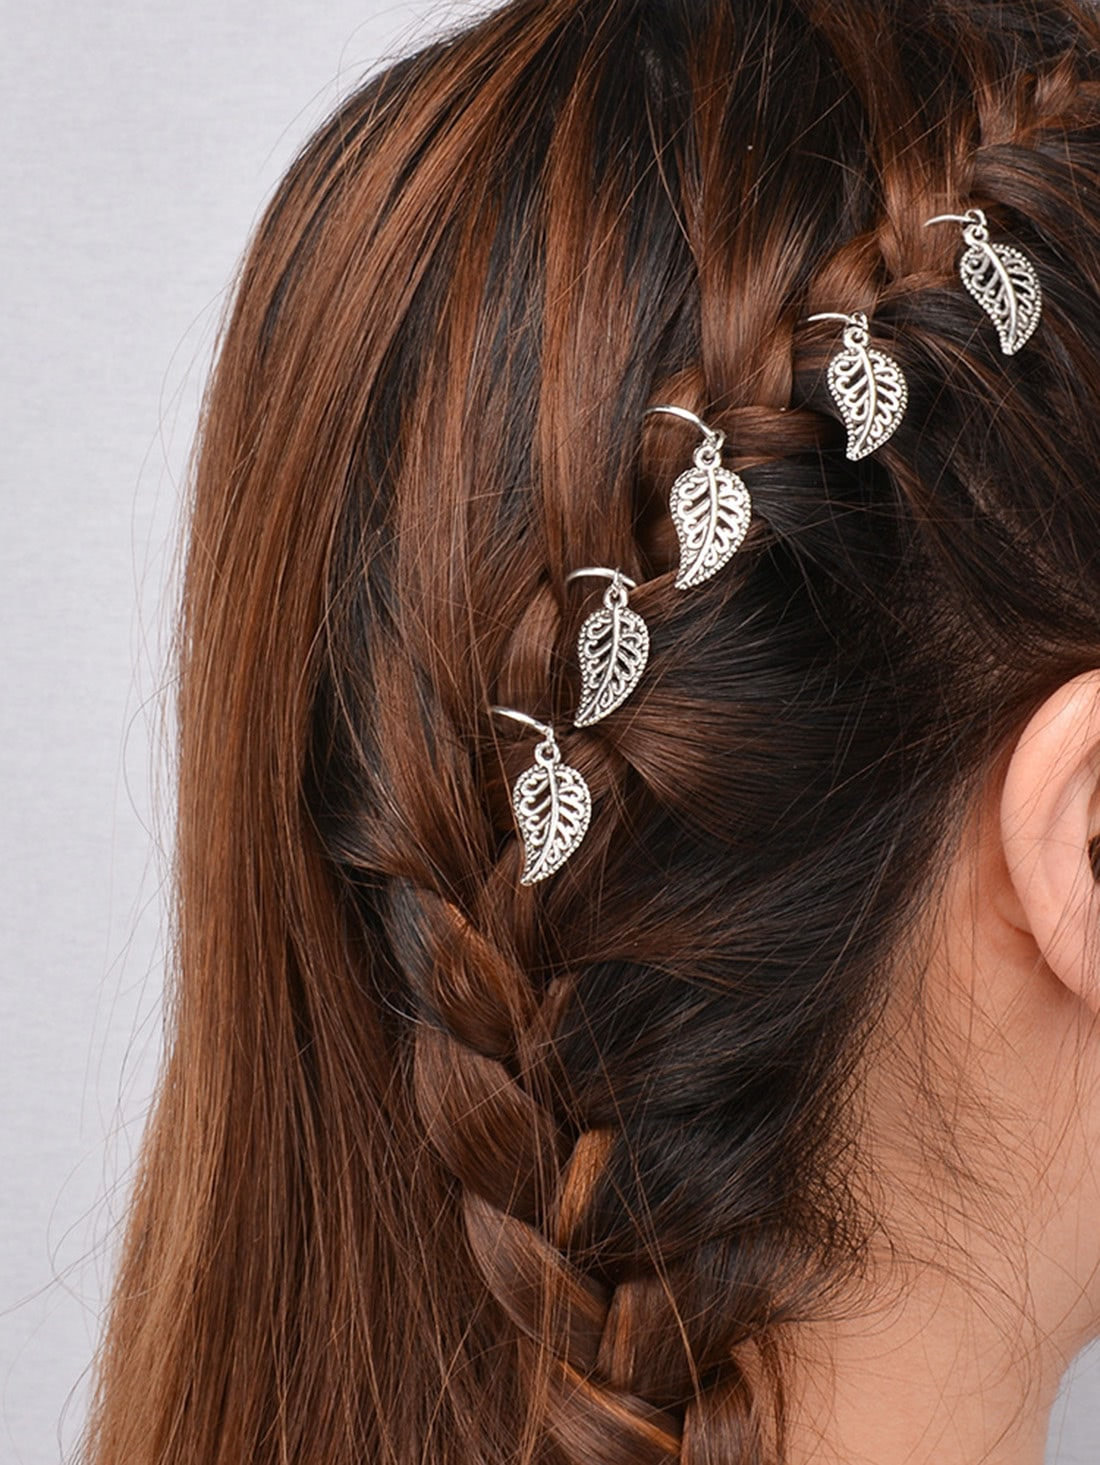 Silver Leaf Shaped Dreadlock Hair Accessory Set 5 pcs leaf hair accessory